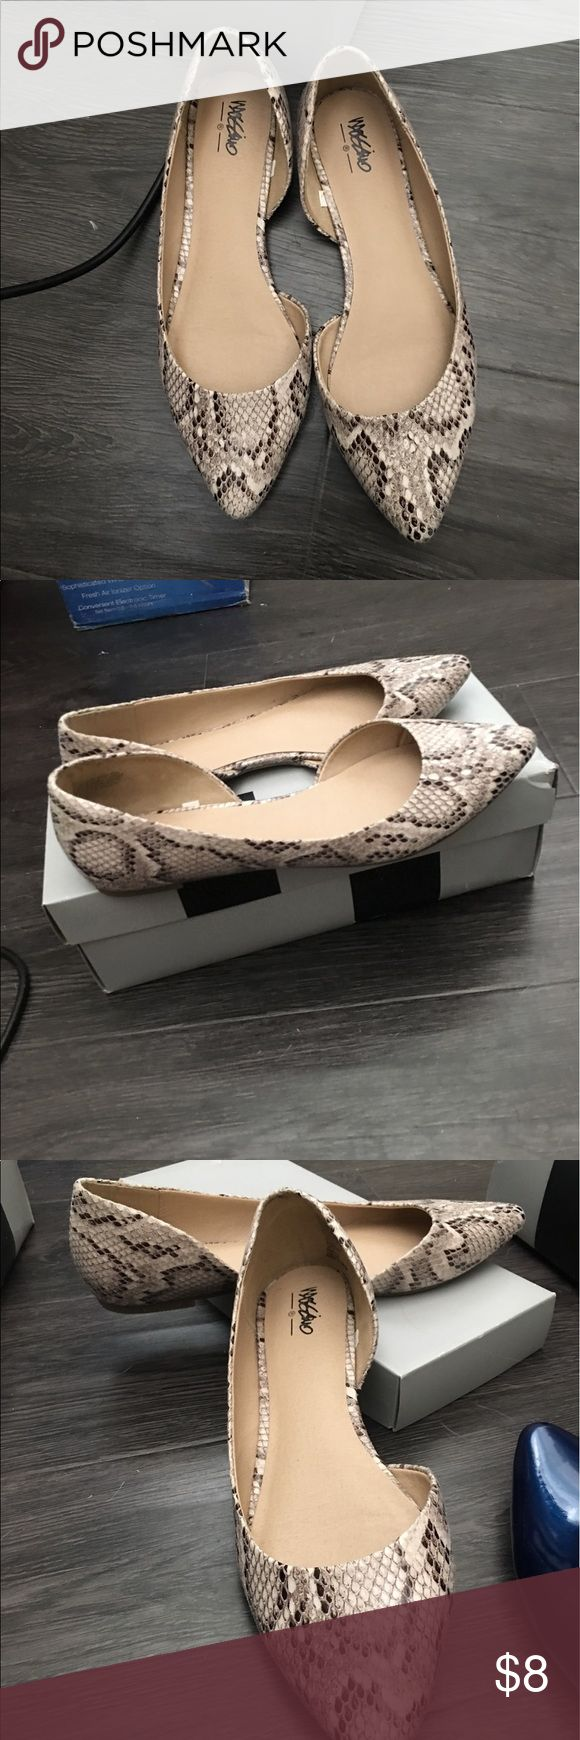 Leopard print flats Cute leopard print shoes - worn once - didn't fit Mossimo Supply Co Shoes Flats & Loafers